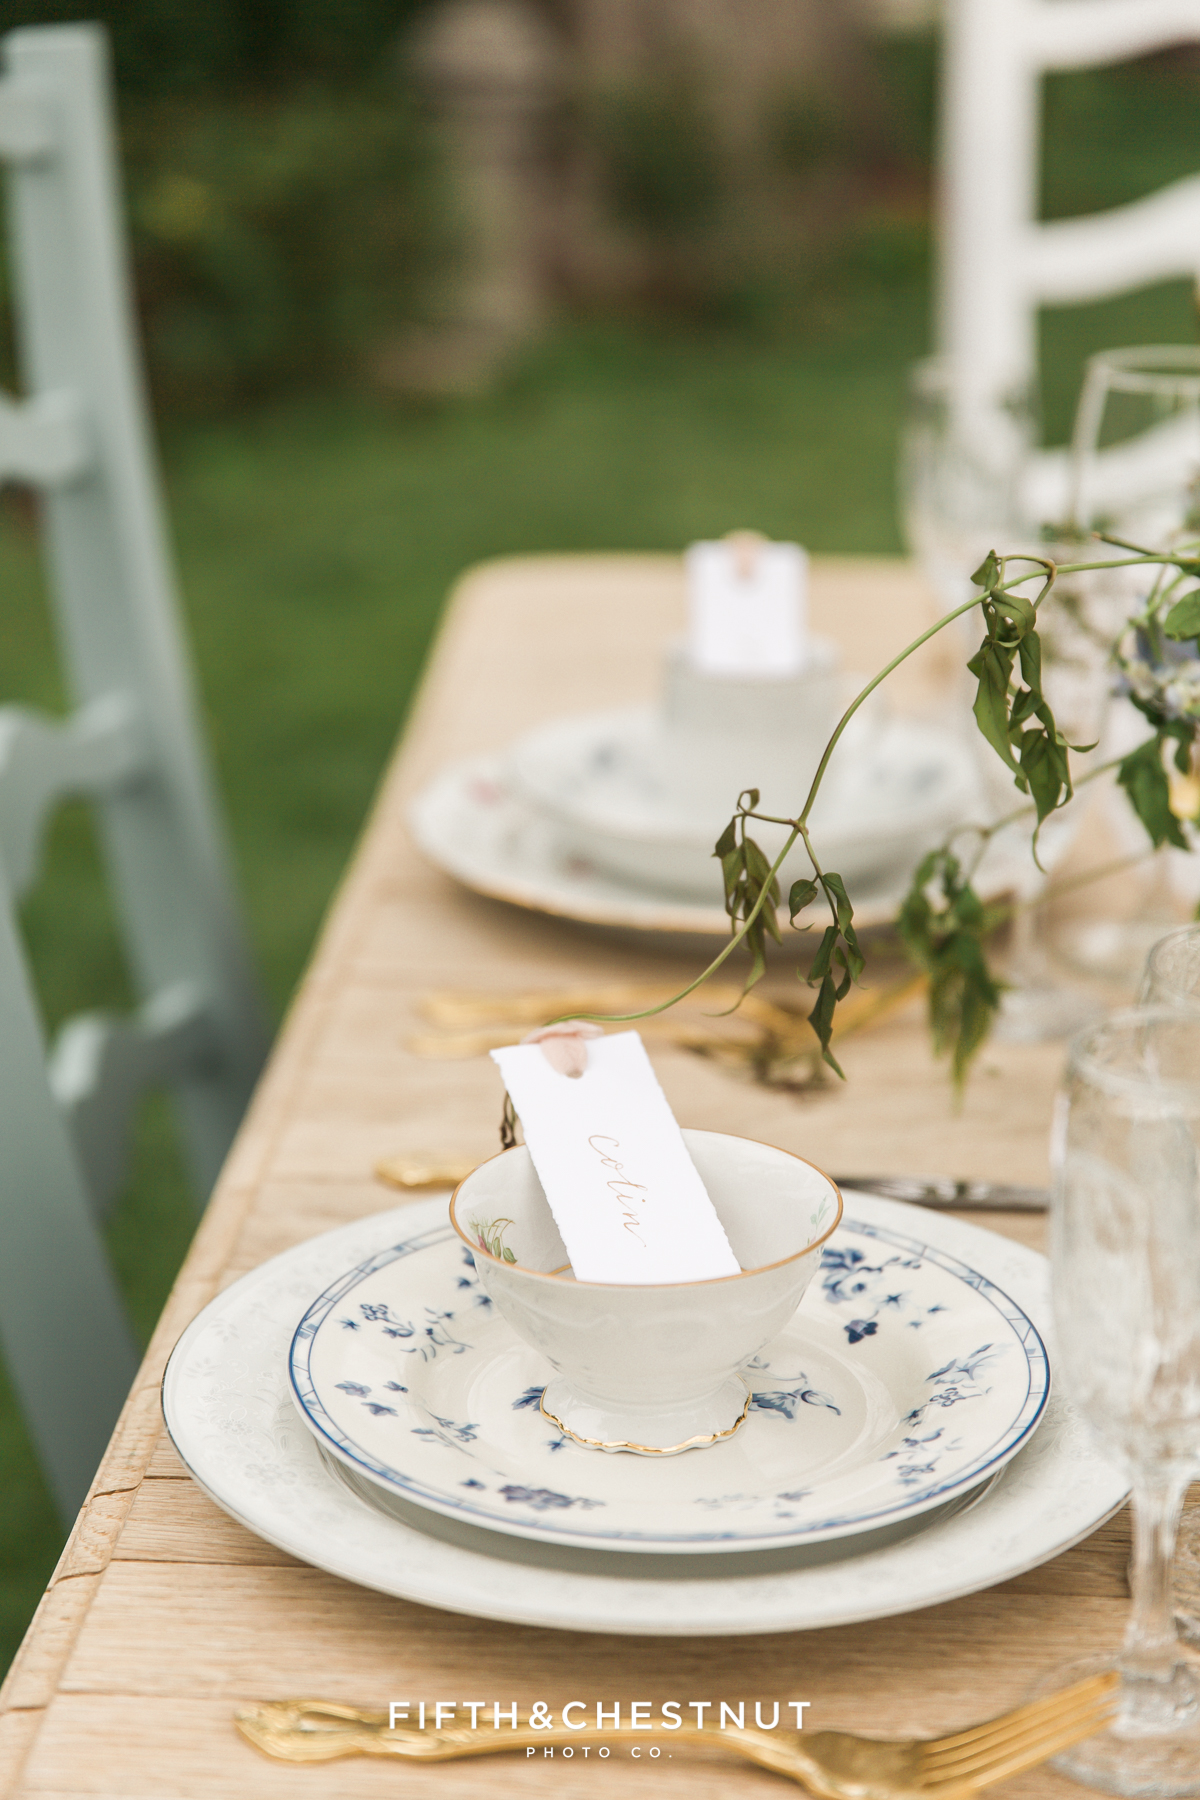 tea cups and plates with gold flatware on vintage dining table for a Dusty Blue Private Estate Country French Wedding Styled Shoot